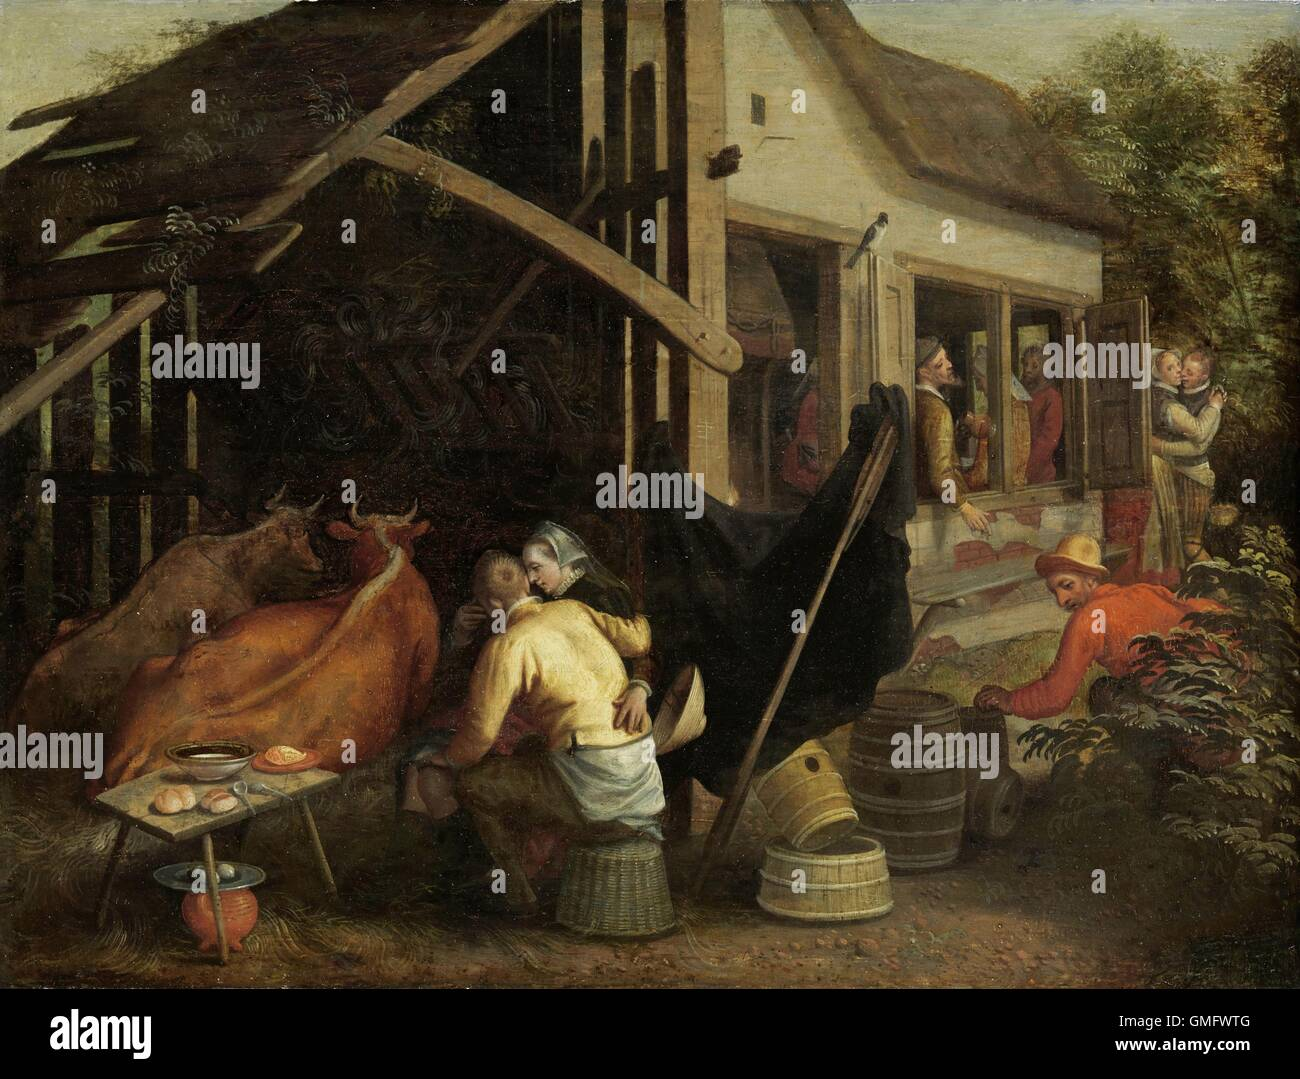 Couples Making Love At A Country Inn By Aert Pietersz C 1570 90 Dutch Painting Oil On Panel The Couple Foreground Embrace